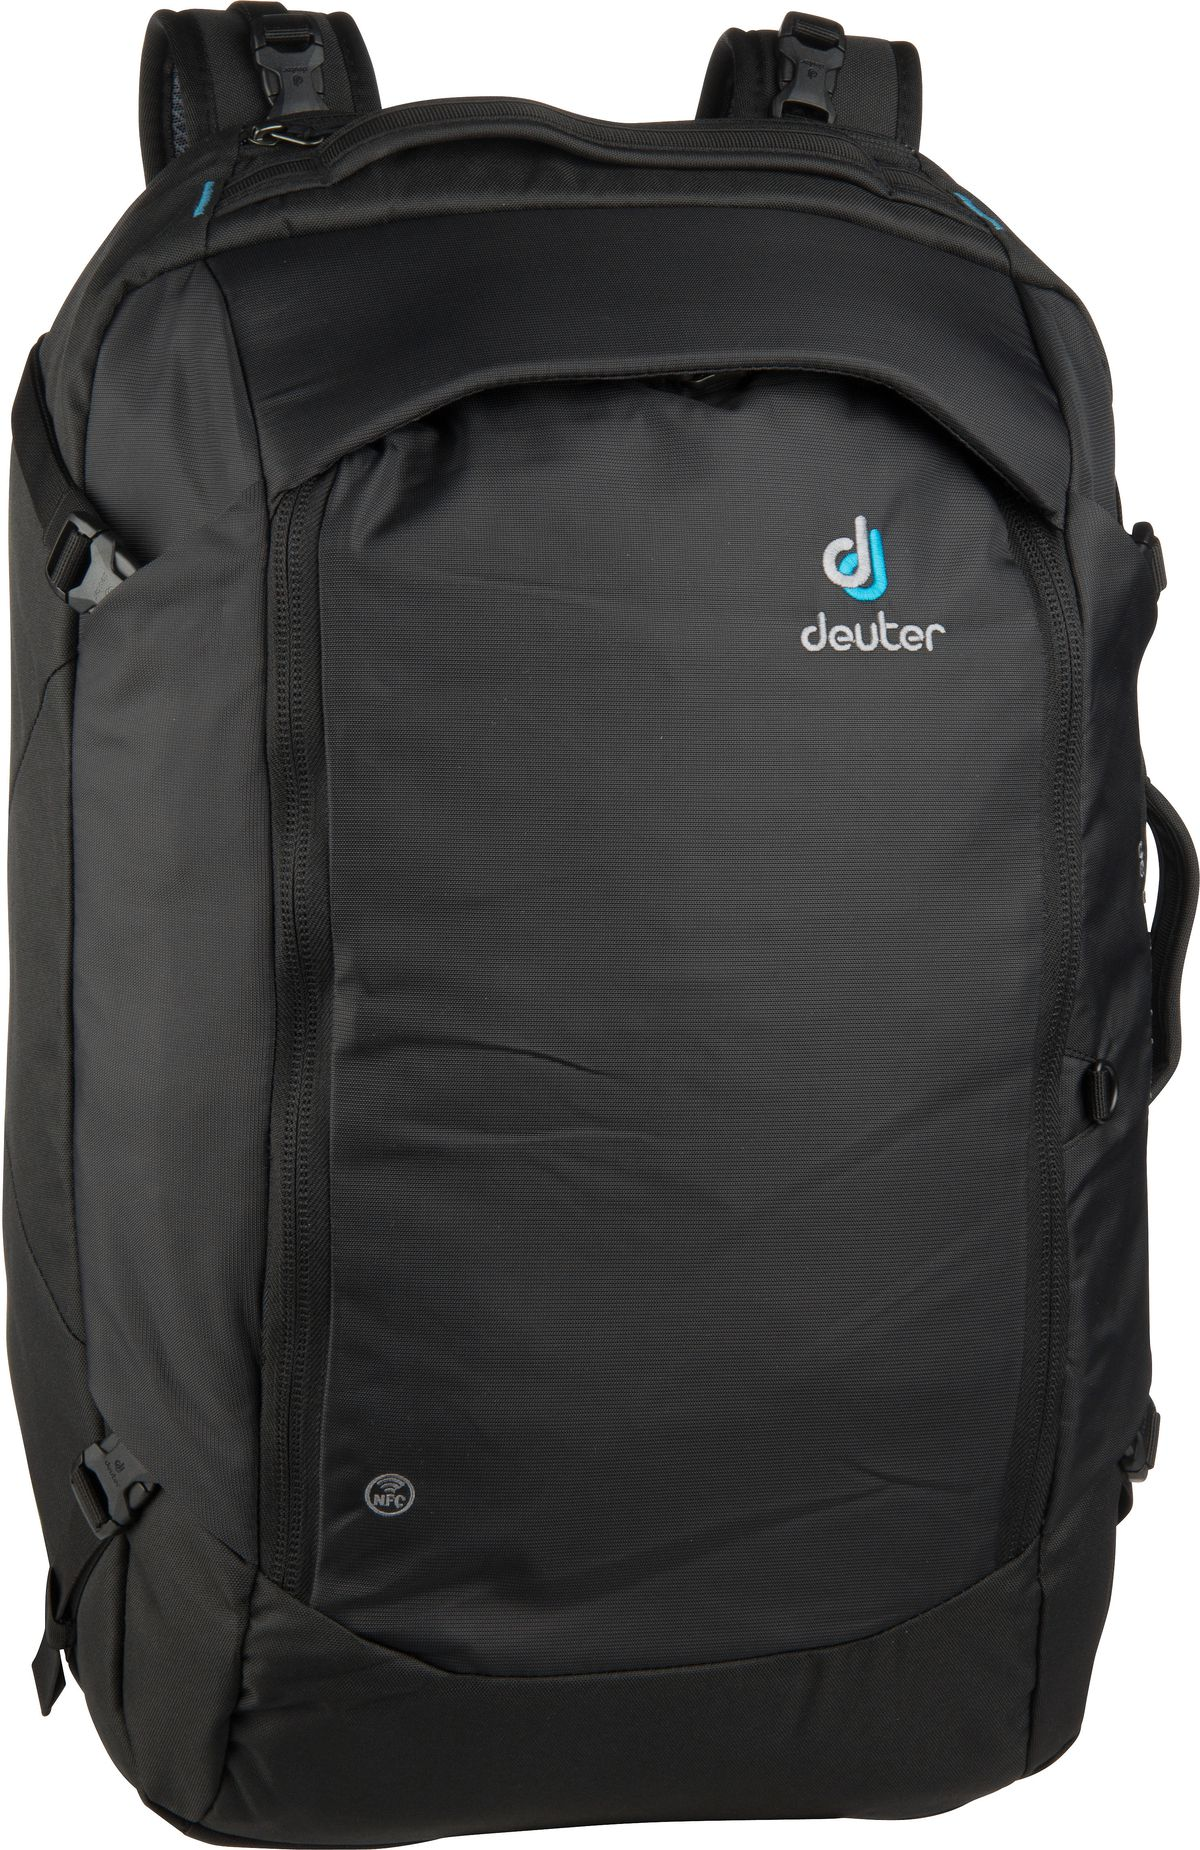 Laptoprucksack Aviant Access 38 Black (38 Liter)